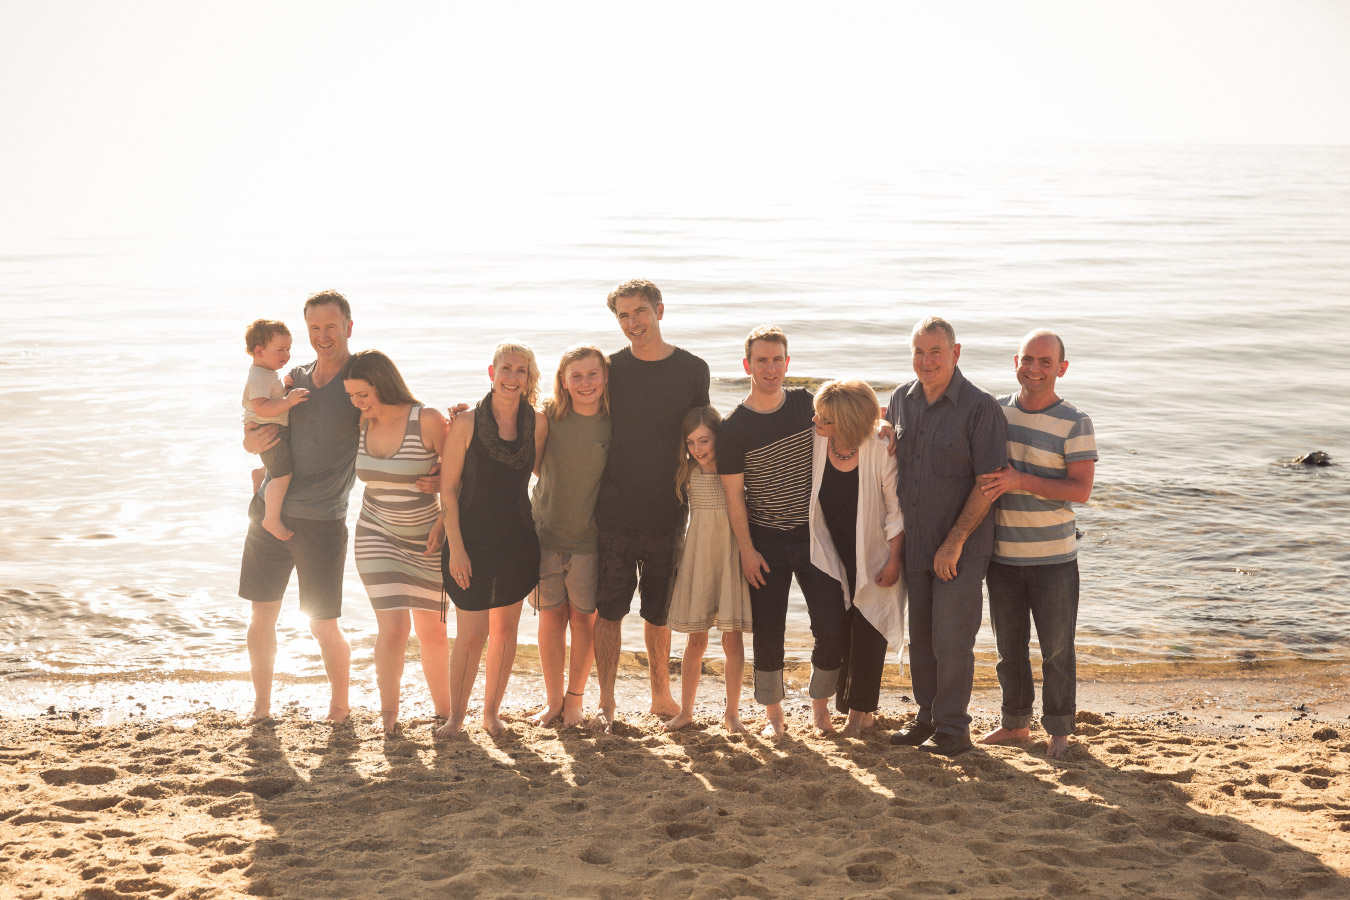 extended-family-photographer-generations-beach-mornington-peninsula